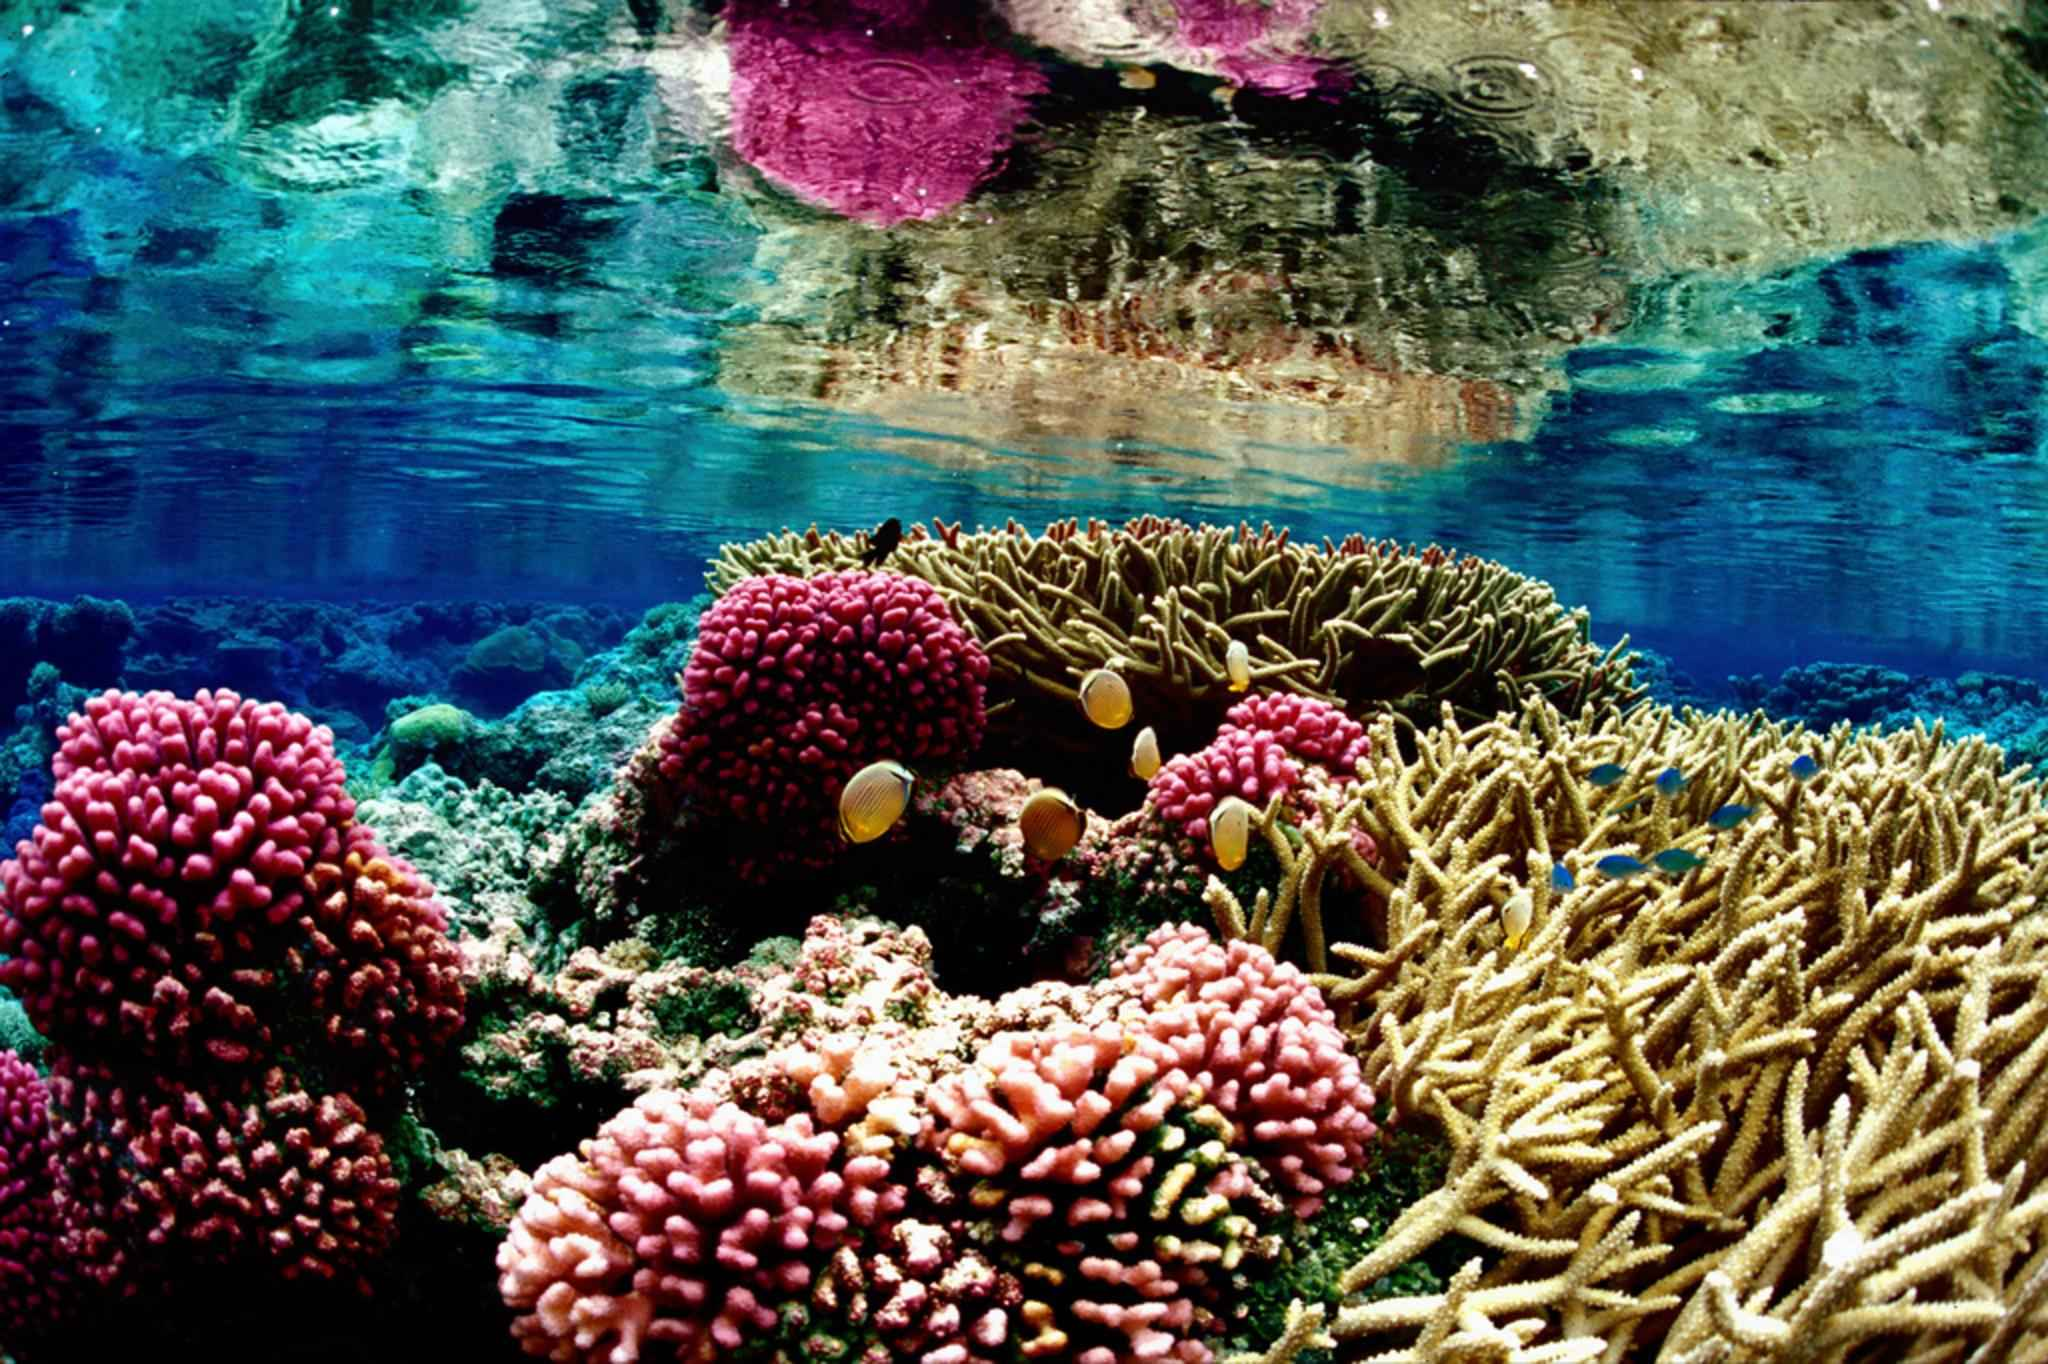 Nothing above the surface of the ocean compares to the beauty of a coral reef.